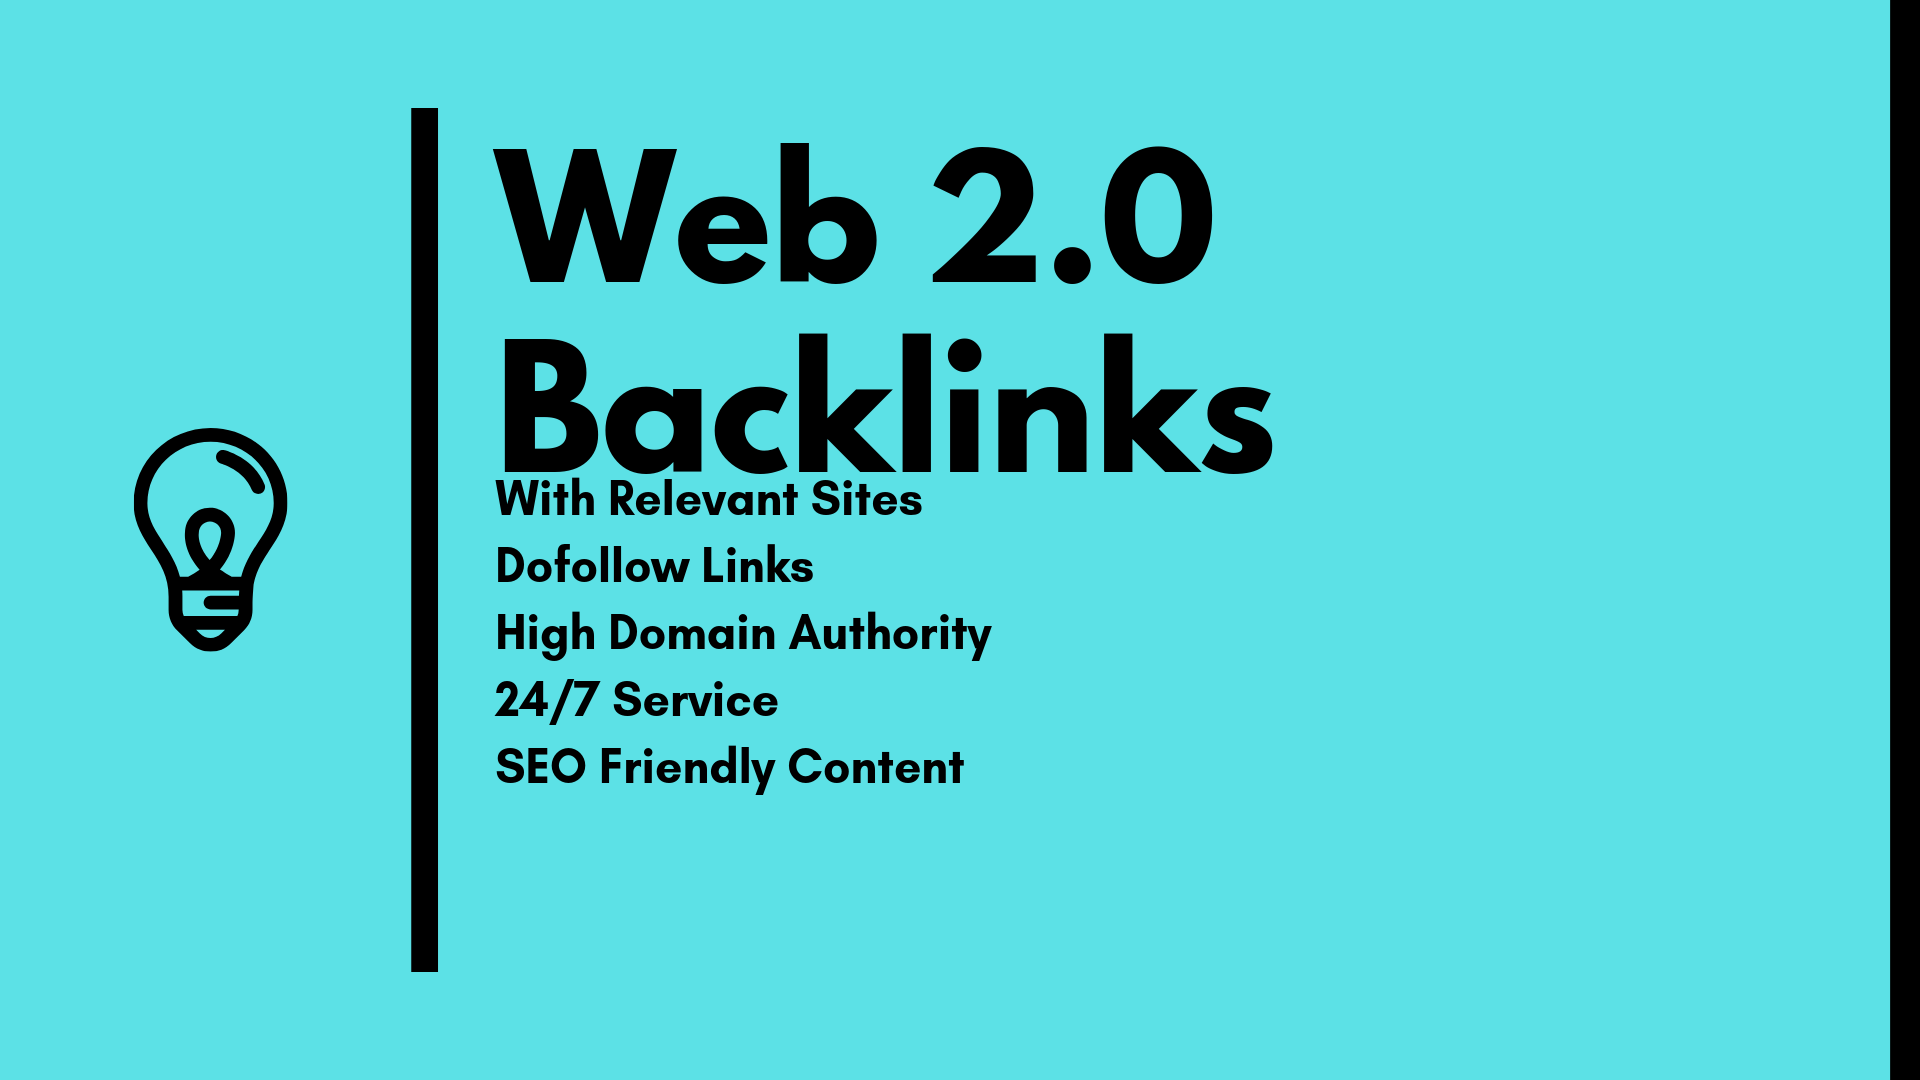 build 50 web 2.0 backlinks with DA 40+ sites in white...